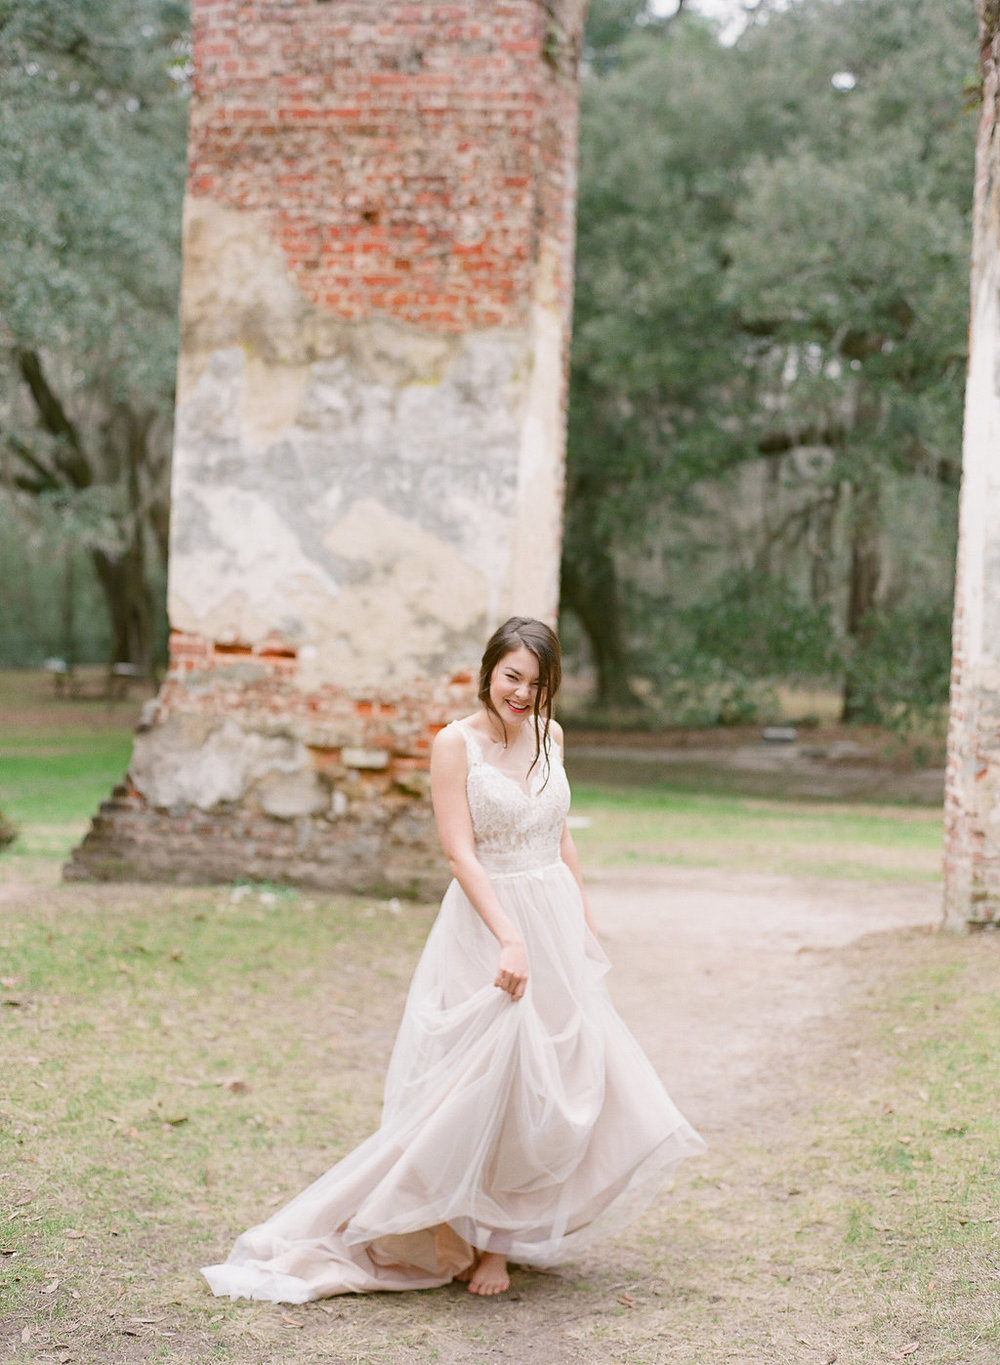 the-happy-bloom-photography-ti-adora-7553-ivory-and-beau-bridal-boutique-savannah-wedding-dresses-old-sheldon-ruins-savannah-wedding-planner-savannah-event-designer-savannah-weddings-savannah-film-photographer-savannah-photography-workshop-7.jpg